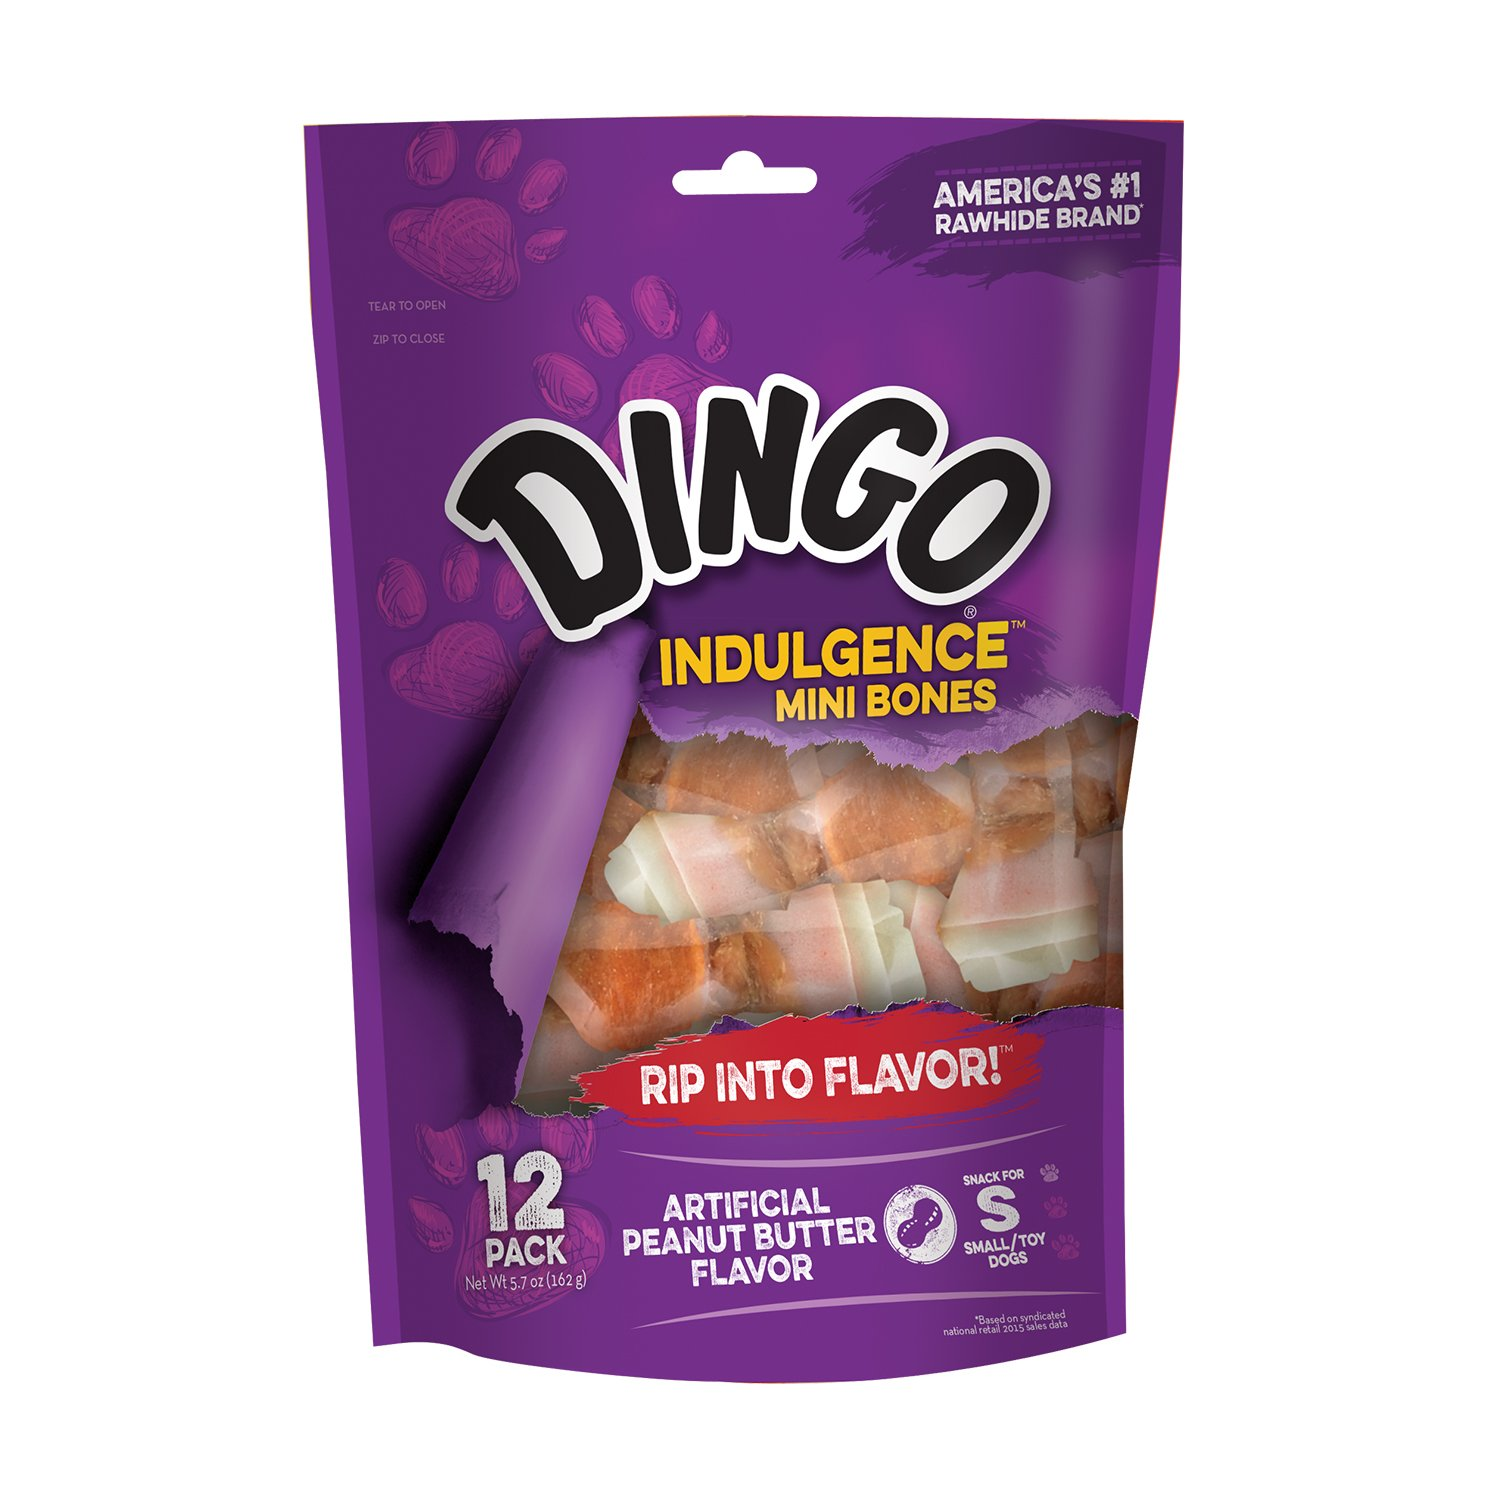 Dingo Mini Bones, Rawhide Chews for Dogs, Non-China Rawhides, Made with Real Chicken